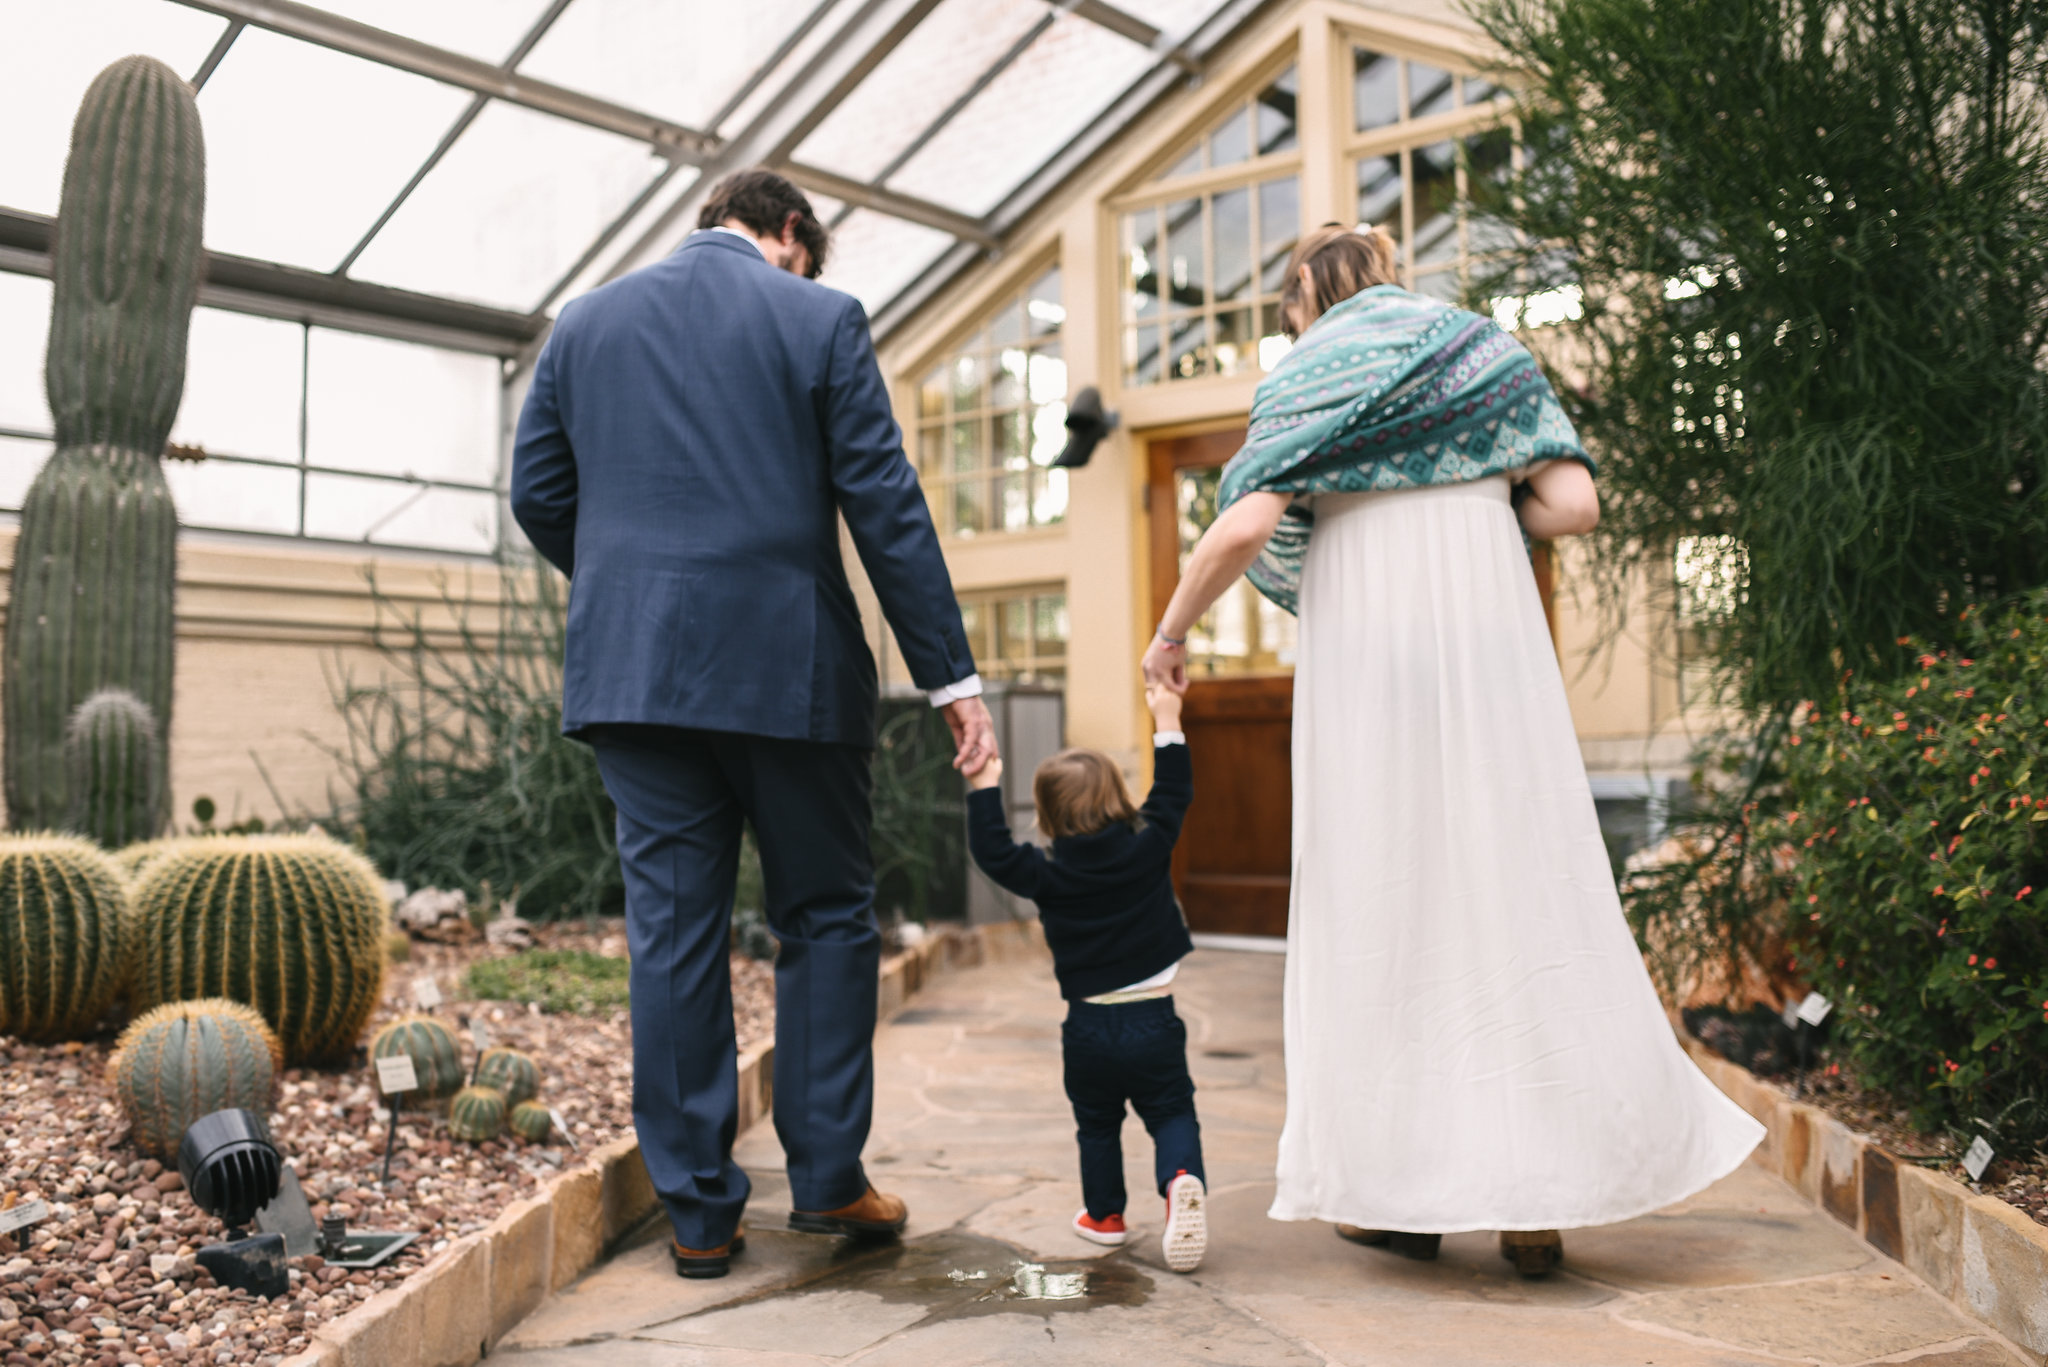 Rawlings Conservatory, Druid Hill Park, Intimate Wedding, Nature, Baltimore Wedding Photographer, Romantic, Classic, Bride and Groom Walking with Infant Son, Candid Photo